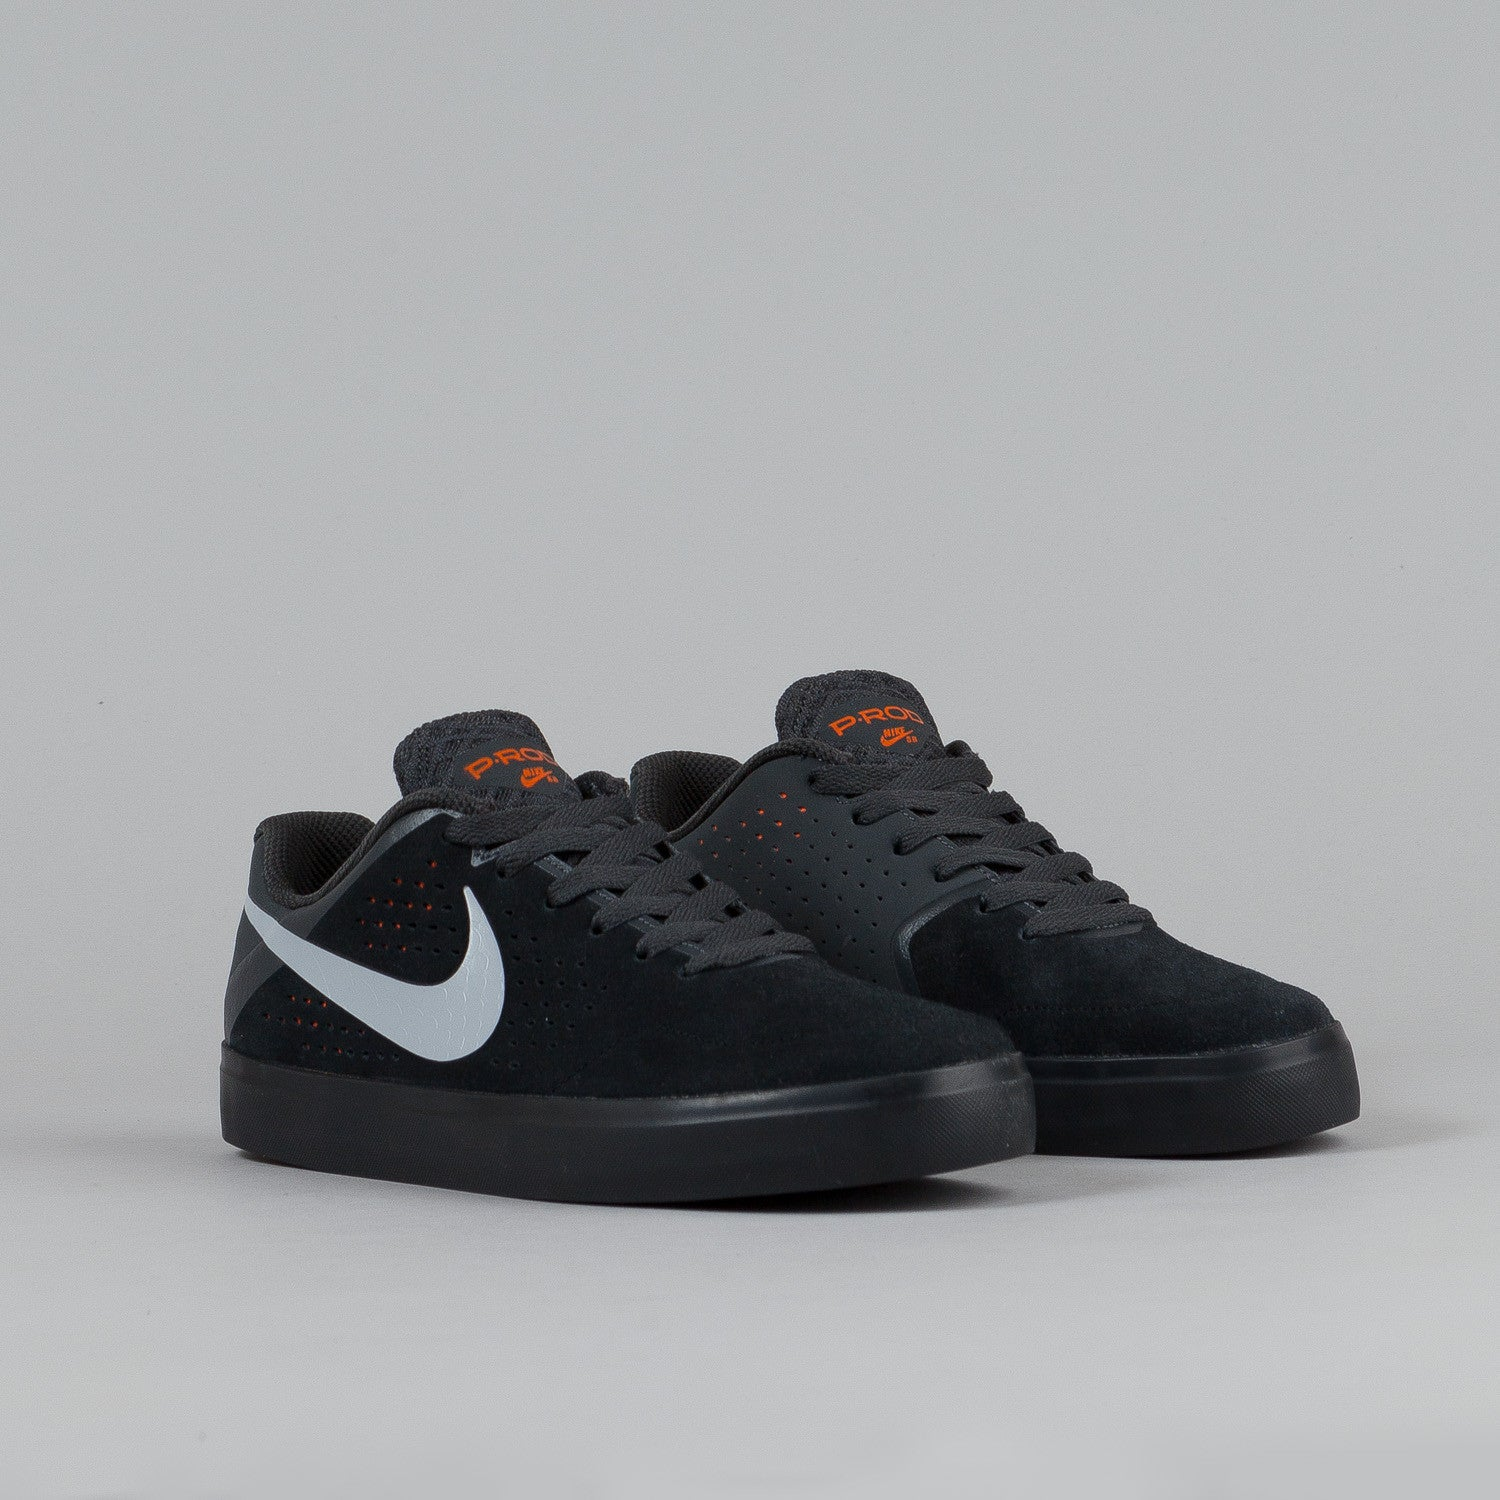 Nike SB Paul Rodriguez CTD LR Black / Wolf Grey - Anthracite